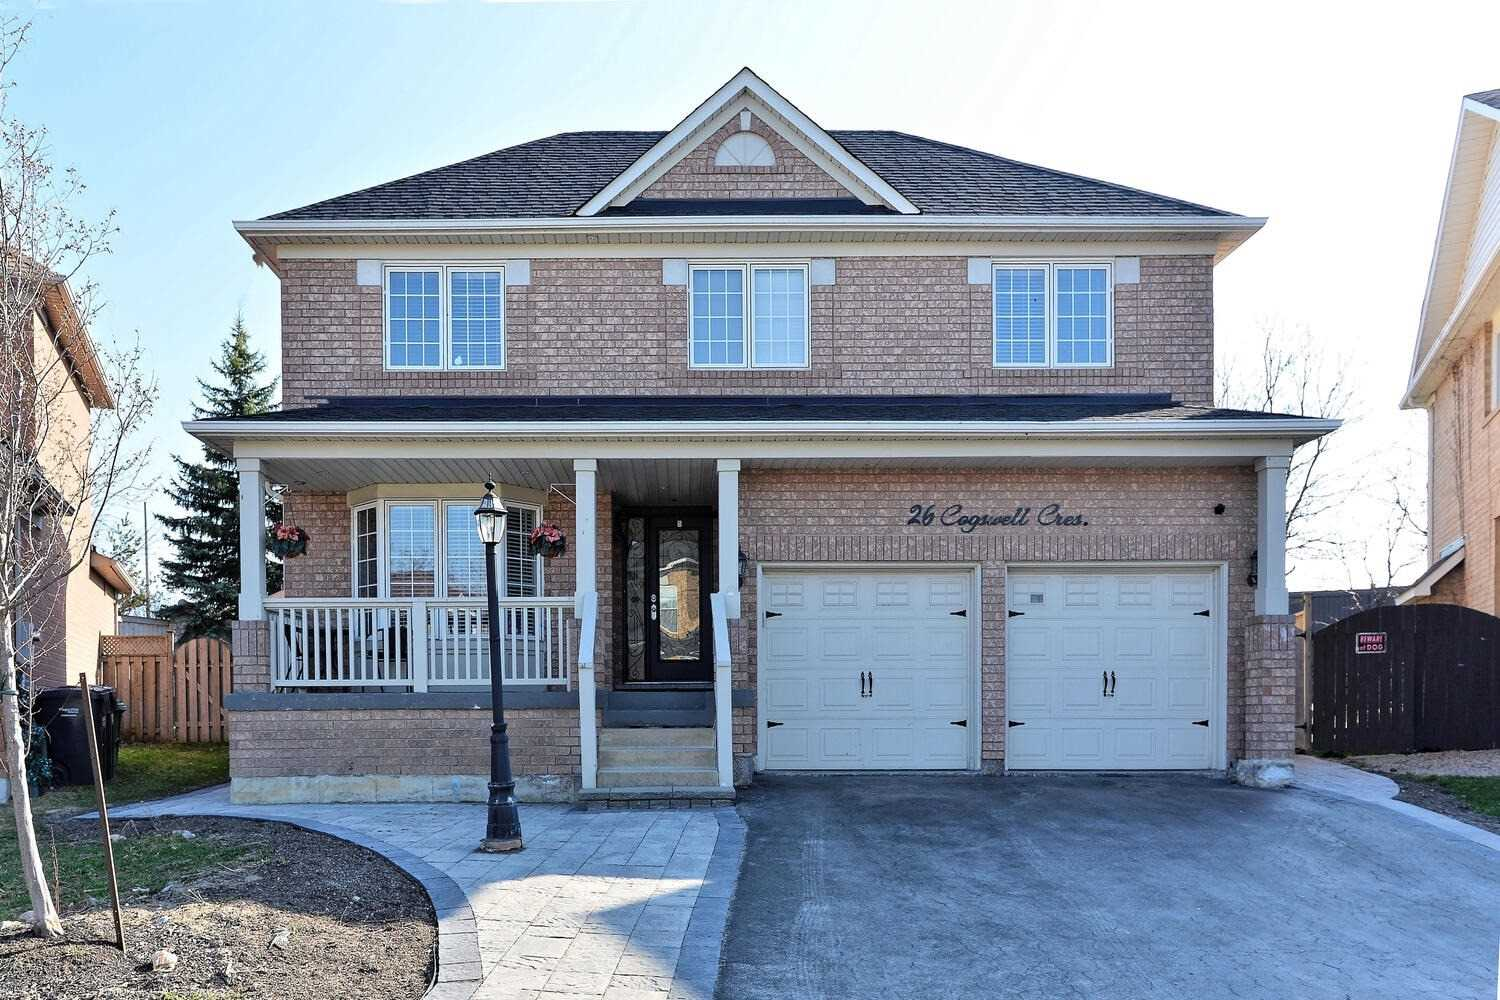 26 Cogswell Cres